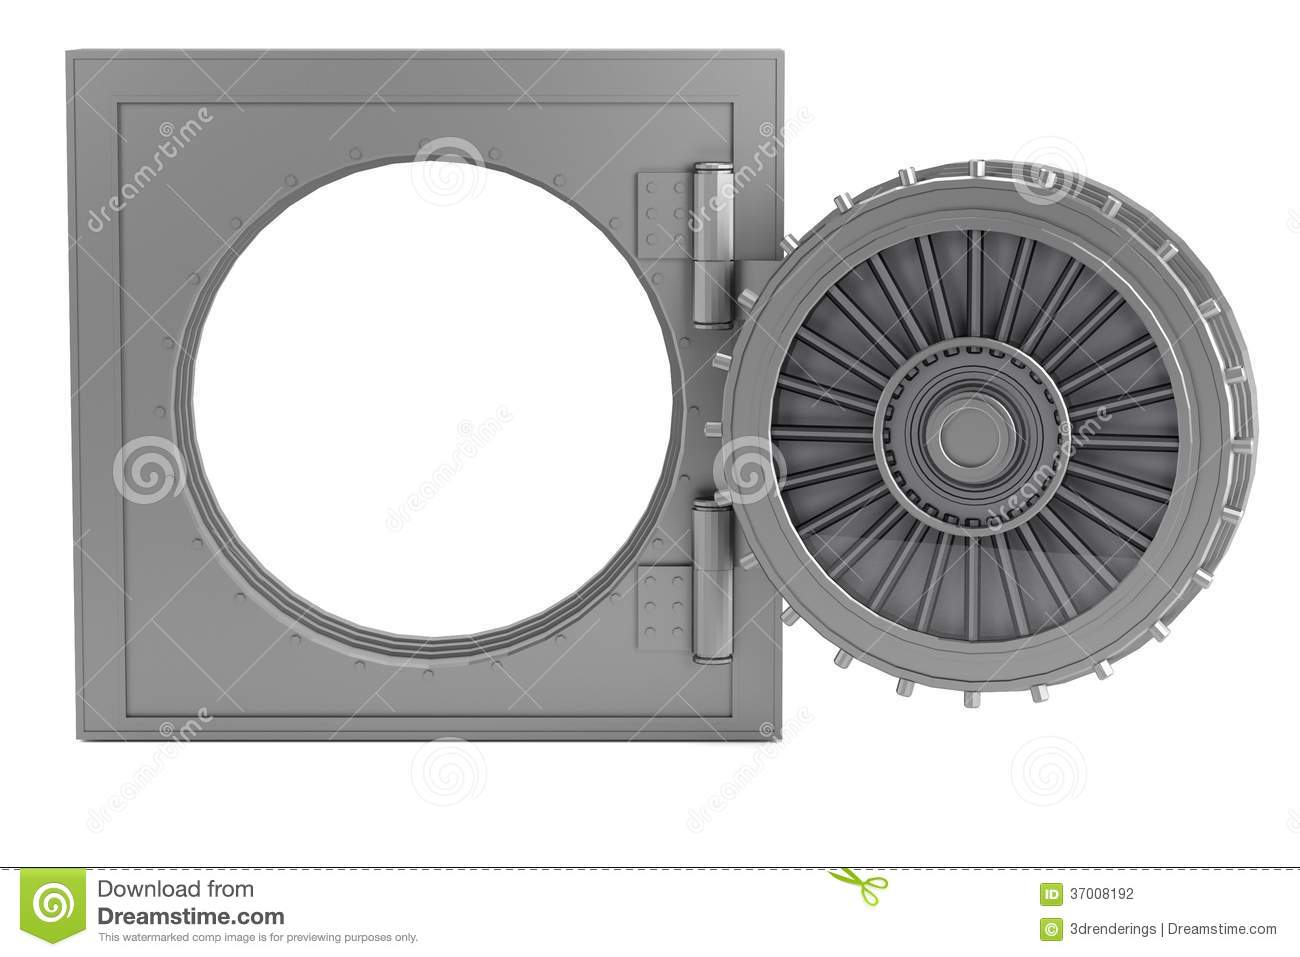 Vault door clipart clip art freeuse library Vault Door Stock Photography - Image: 37008192 clip art freeuse library